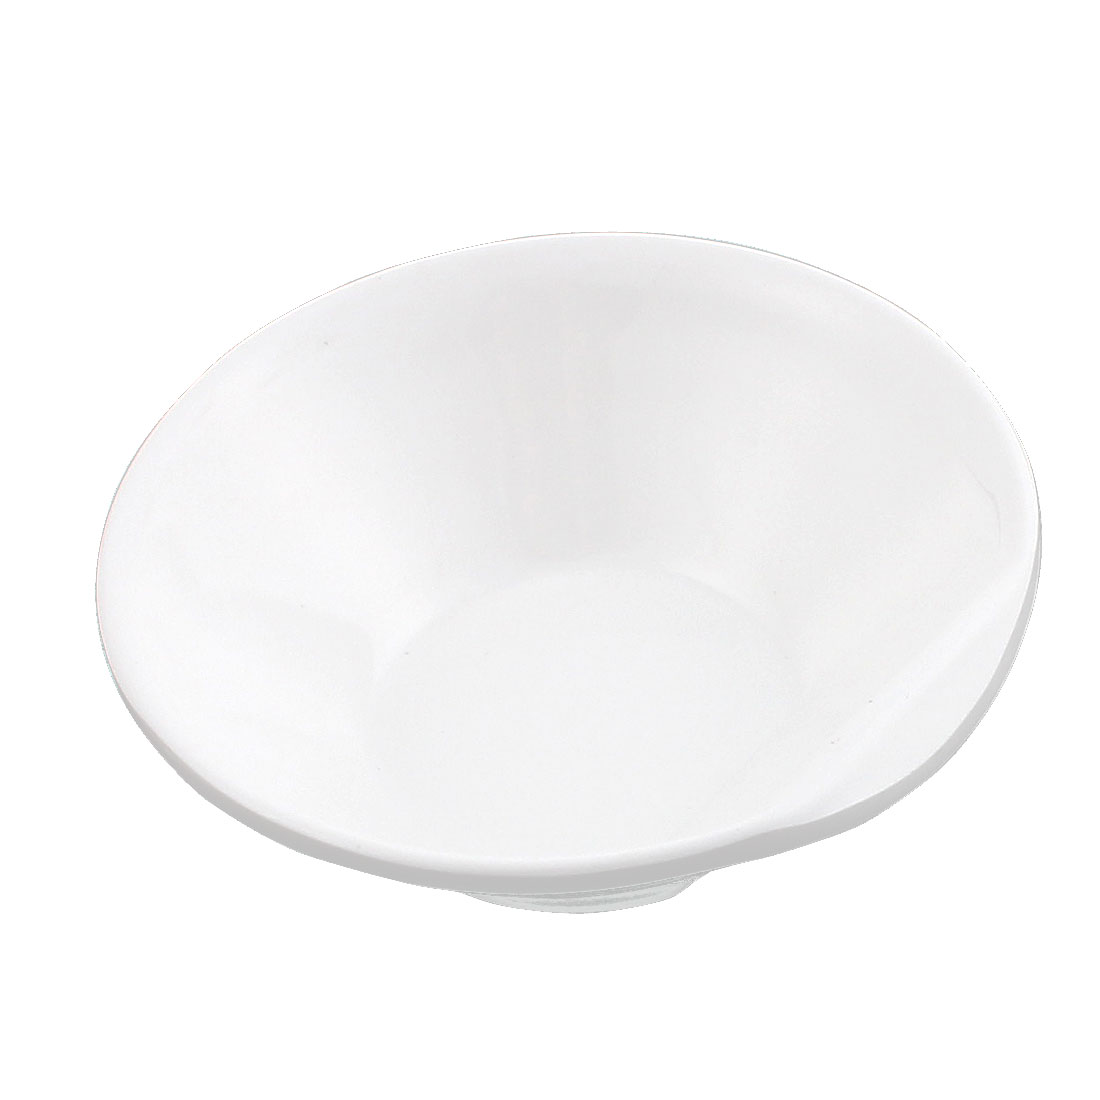 Sushi Soy Sauce Dipping Dish Bowl Plate White 75mm Dia